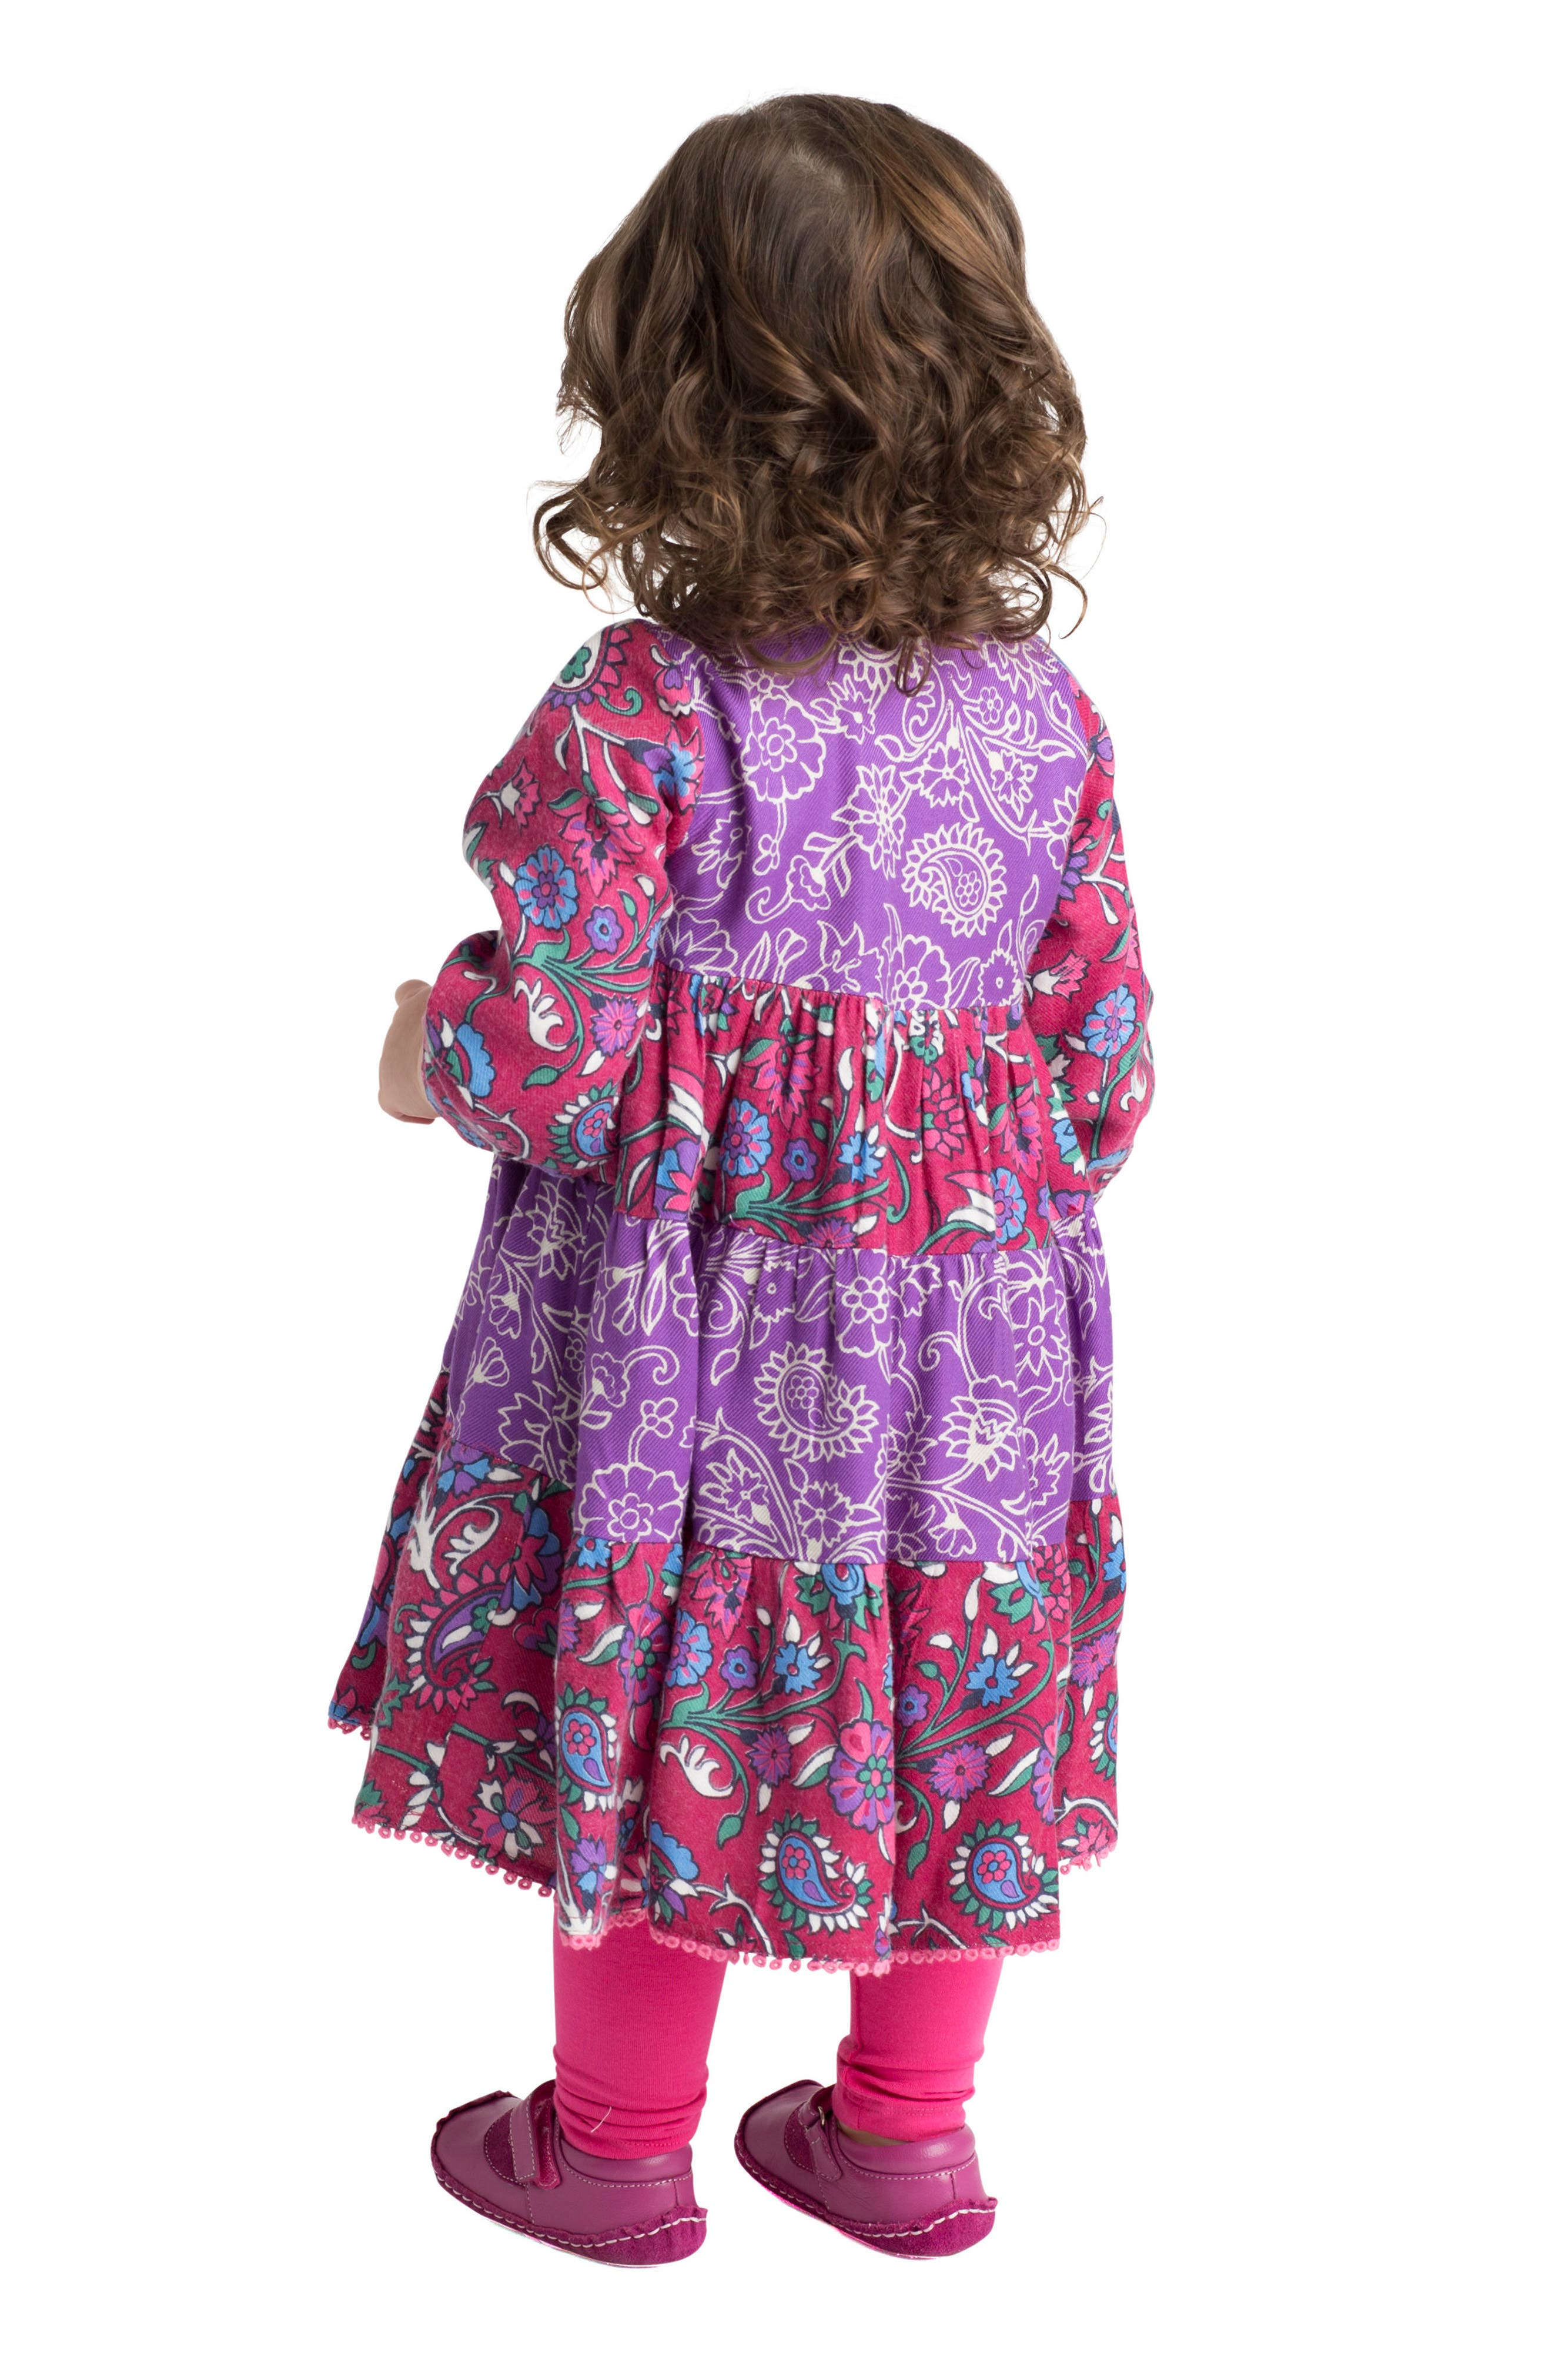 Tiered Floral Dress,                             Alternate thumbnail 3, color,                             Multi